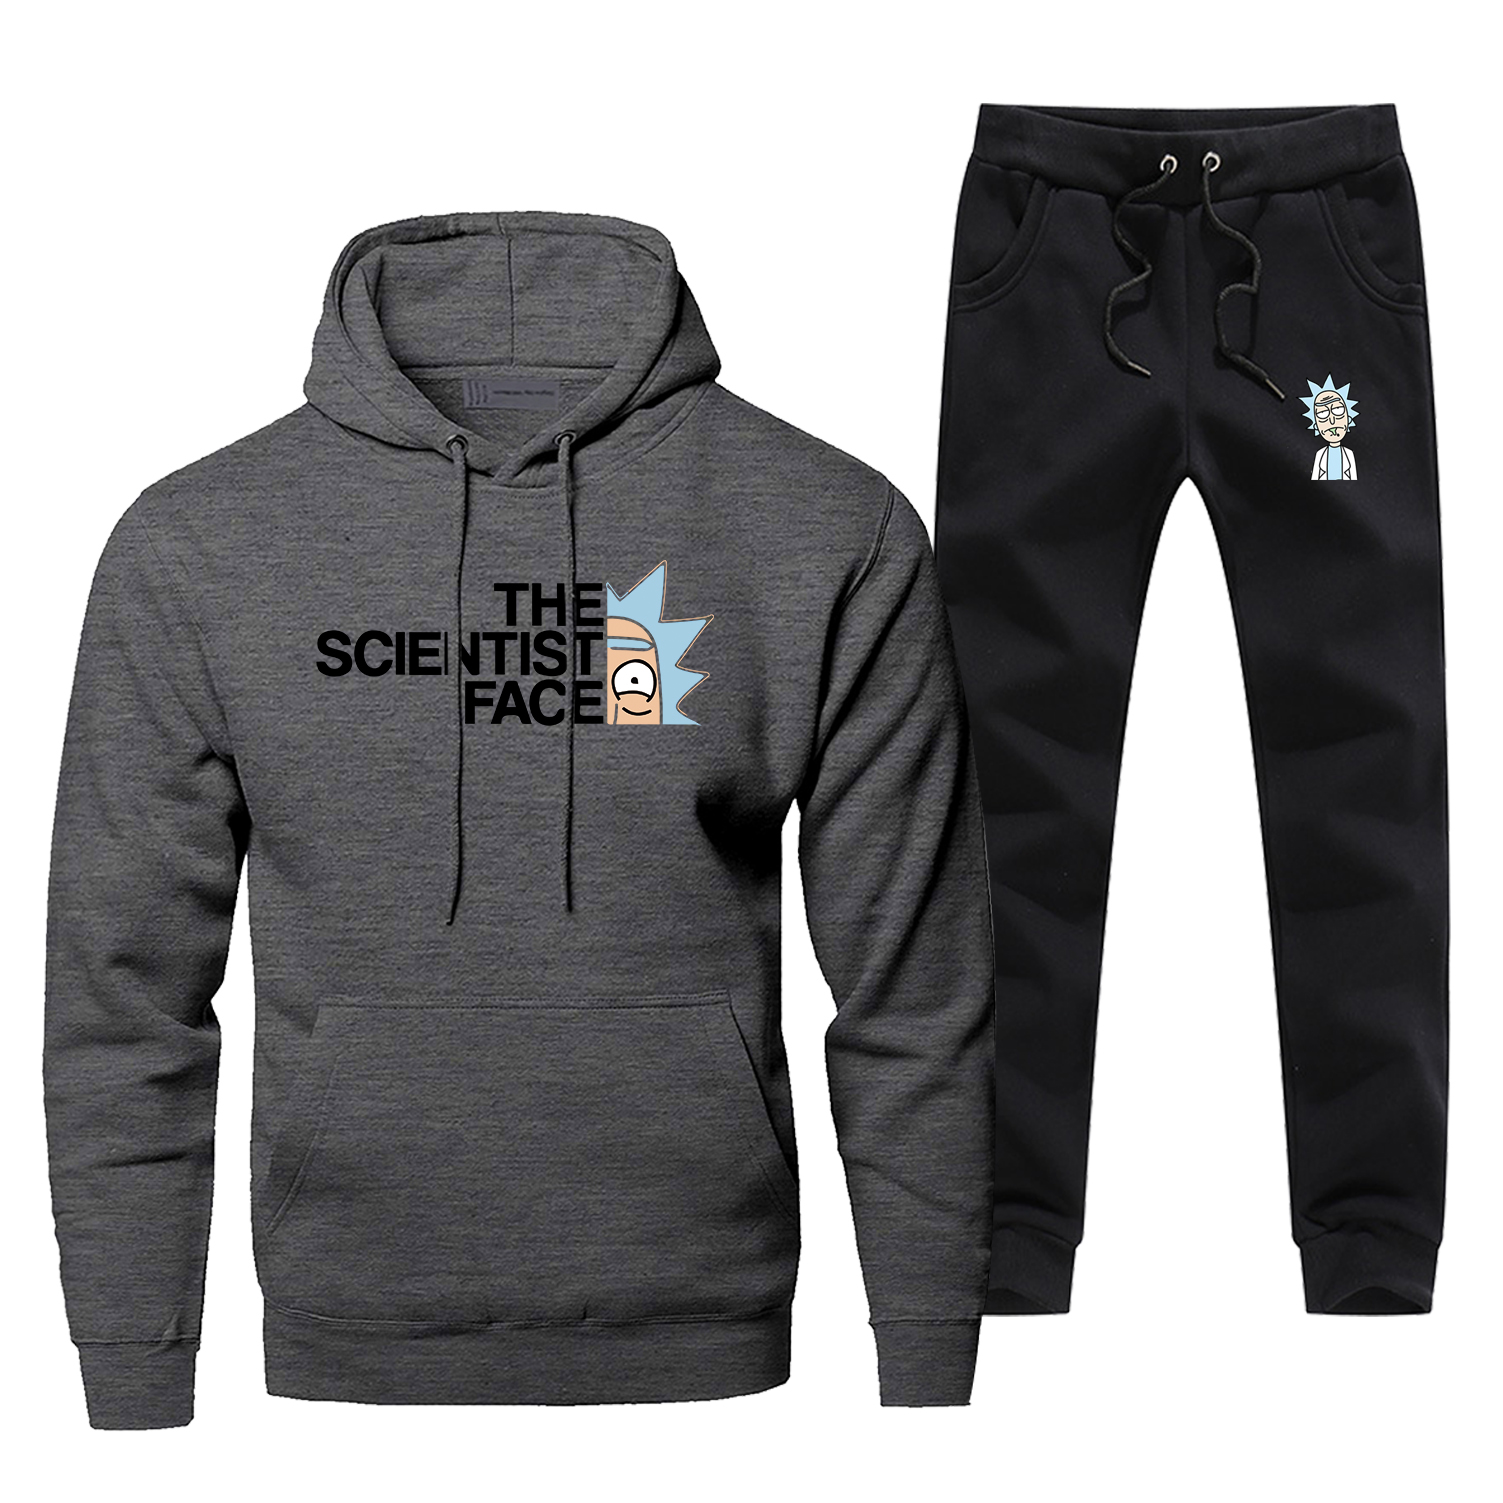 The Scientist Face Hoodies Crazy Rick And Morty Men's Full Suit Tracksuit Fashion Men's Sets Casual Fleece Sweatpants Streetwear